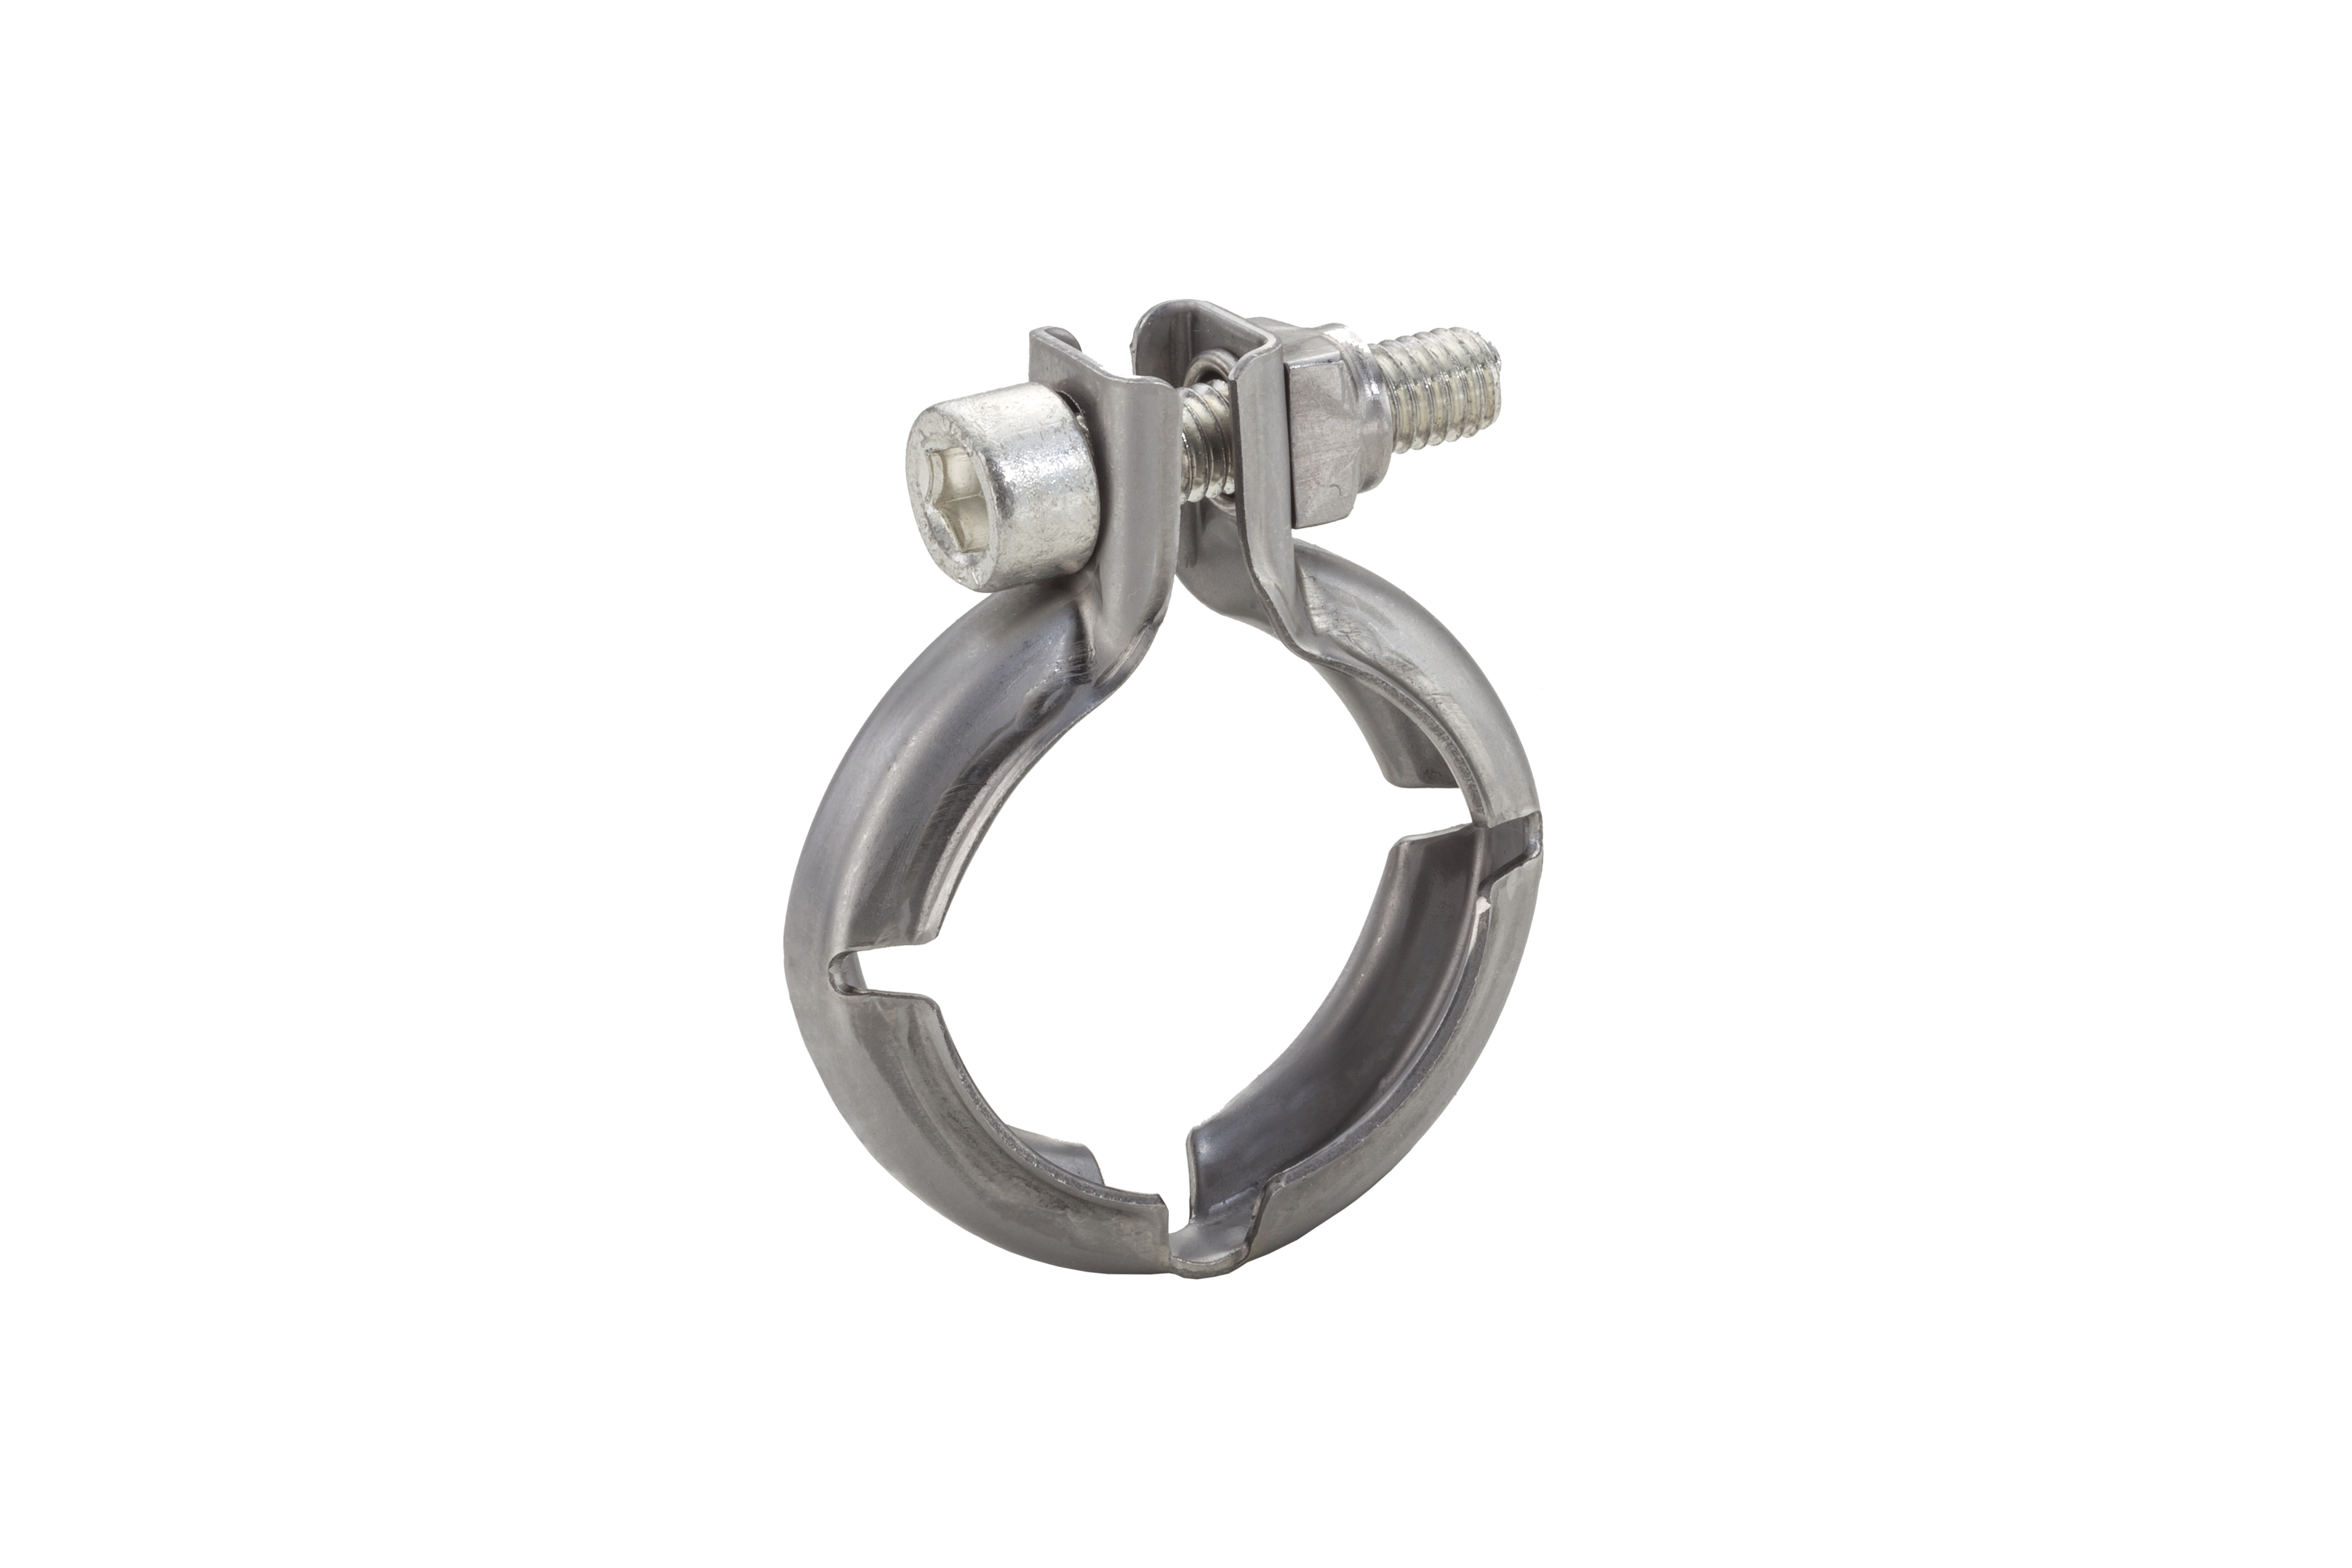 NORMA Group's V-profile clamps ensure reliable connections and allow for easy assembly.